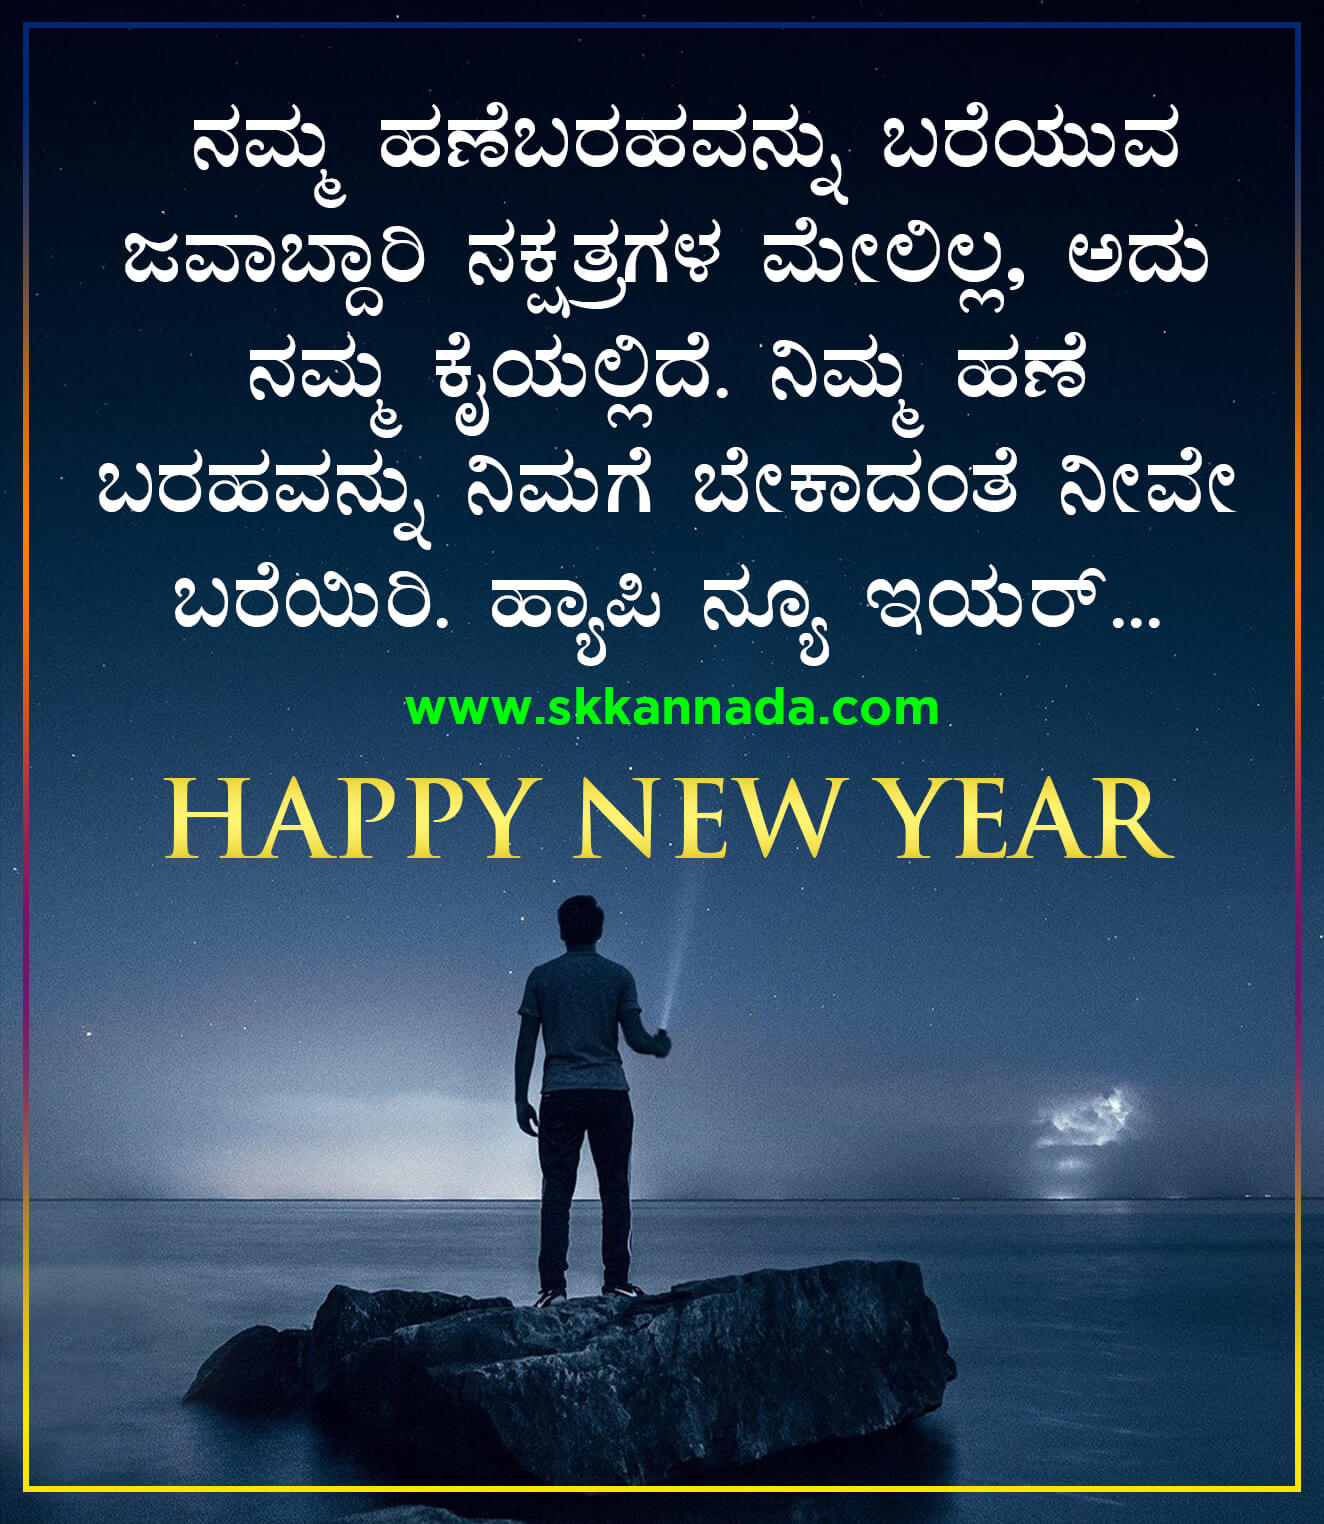 Happy New Year Wishes in Kannada